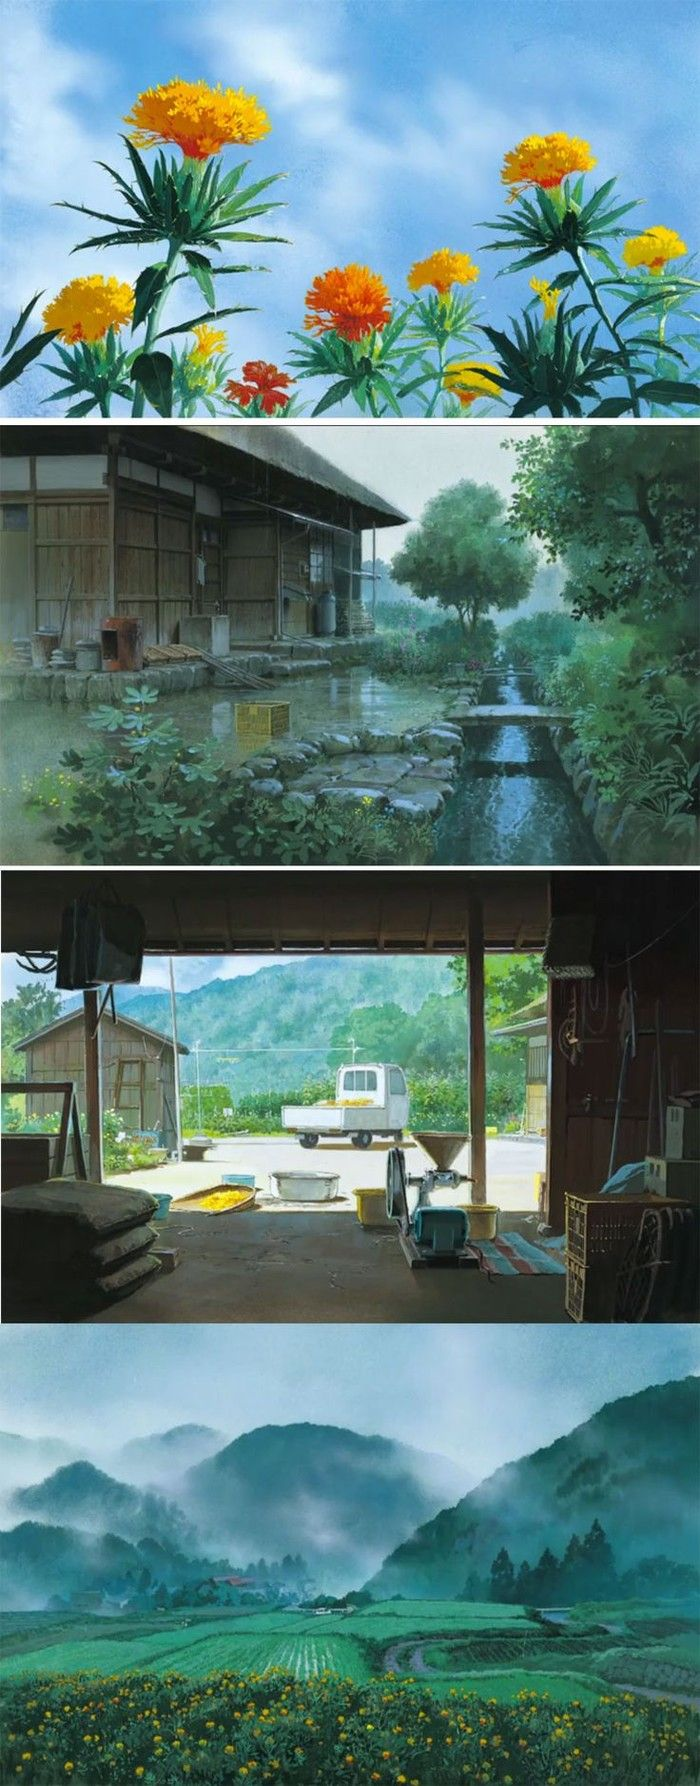 studio ghibli background concepts only yesterday Ghibli